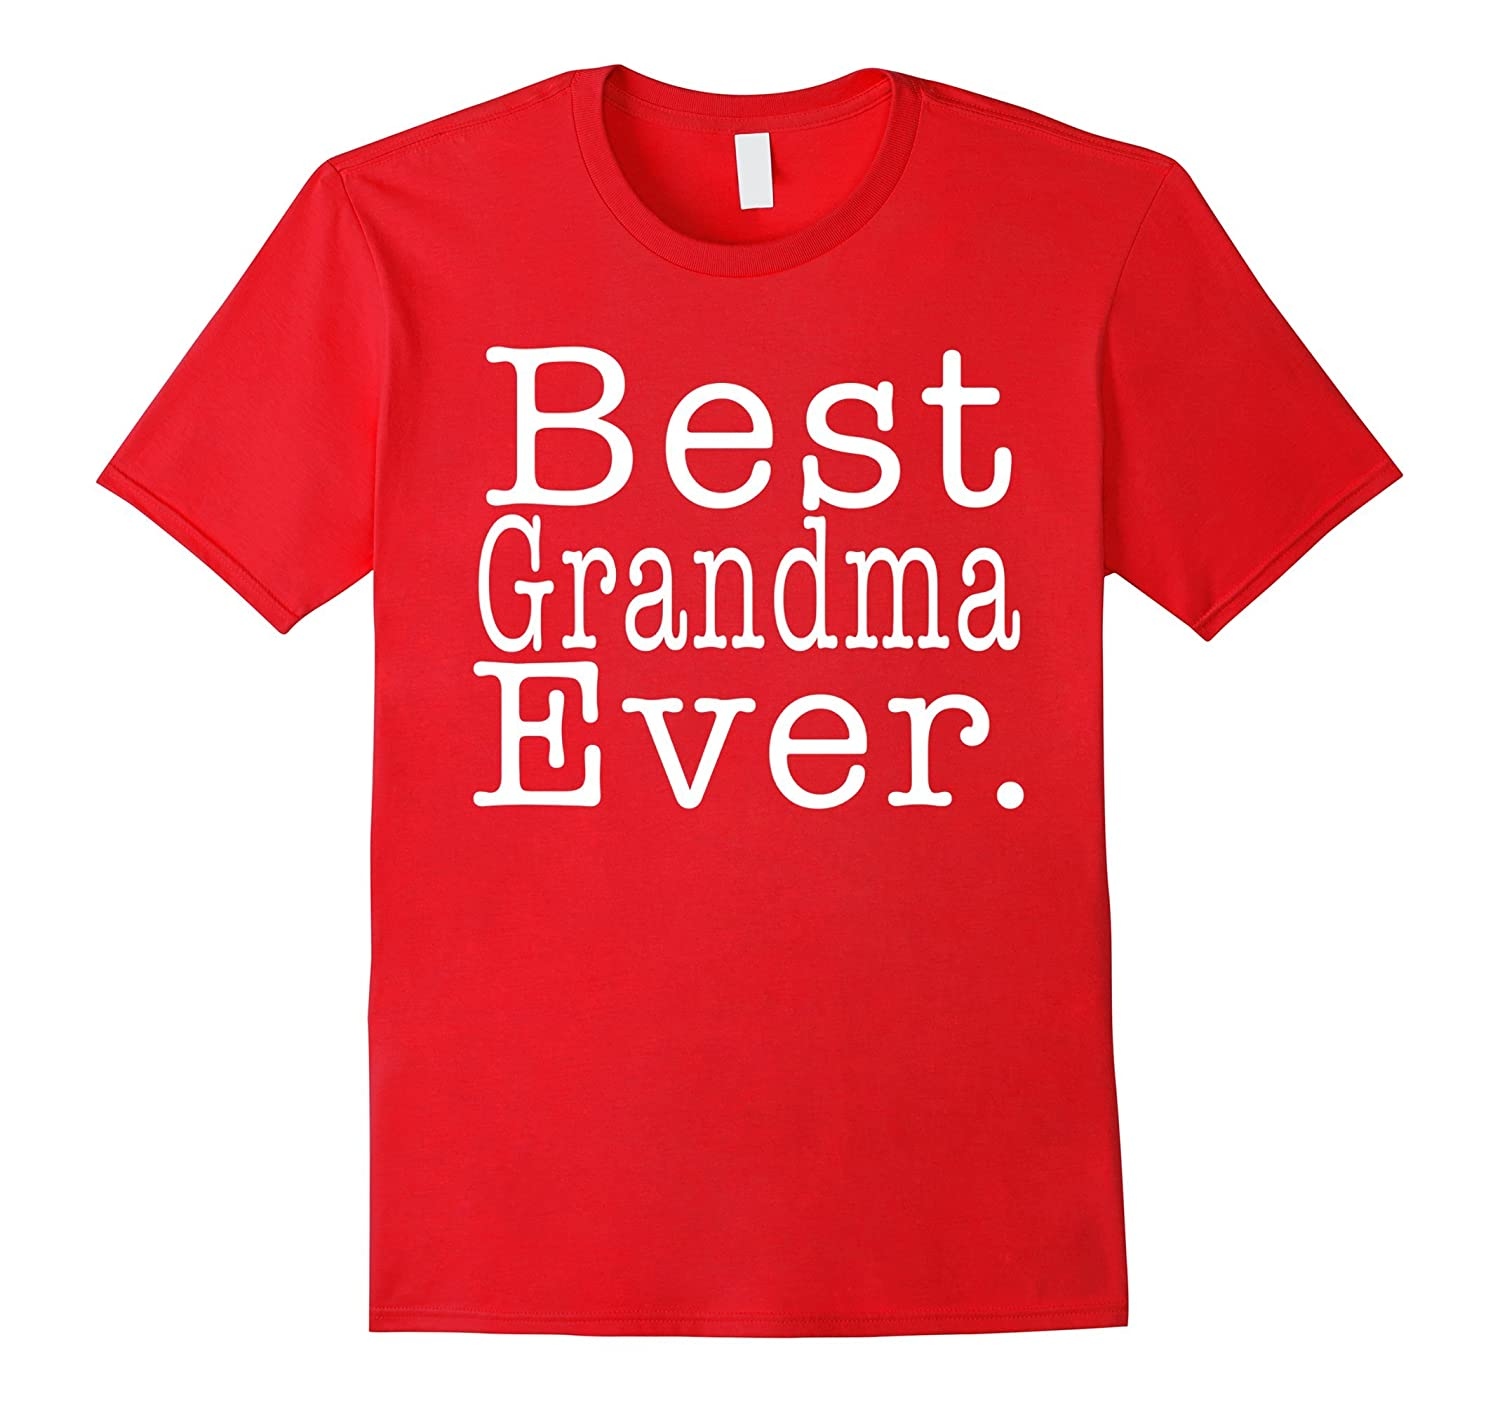 Womens Best Grandma Ever T-shirt - Premium Quality-Art